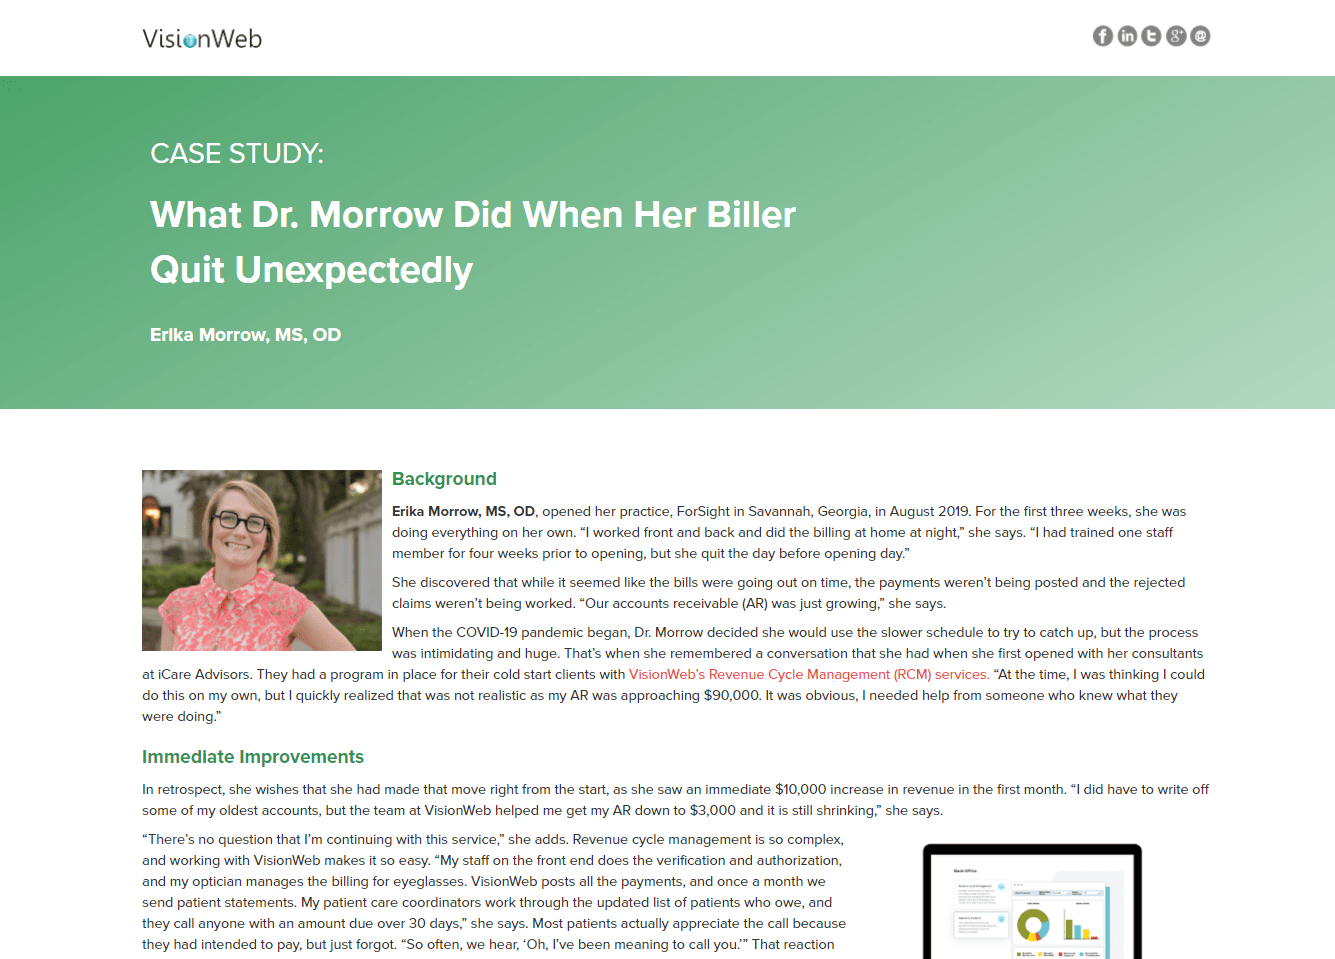 What Dr. Morrow Did When Her Biller Quit Unexpectedly